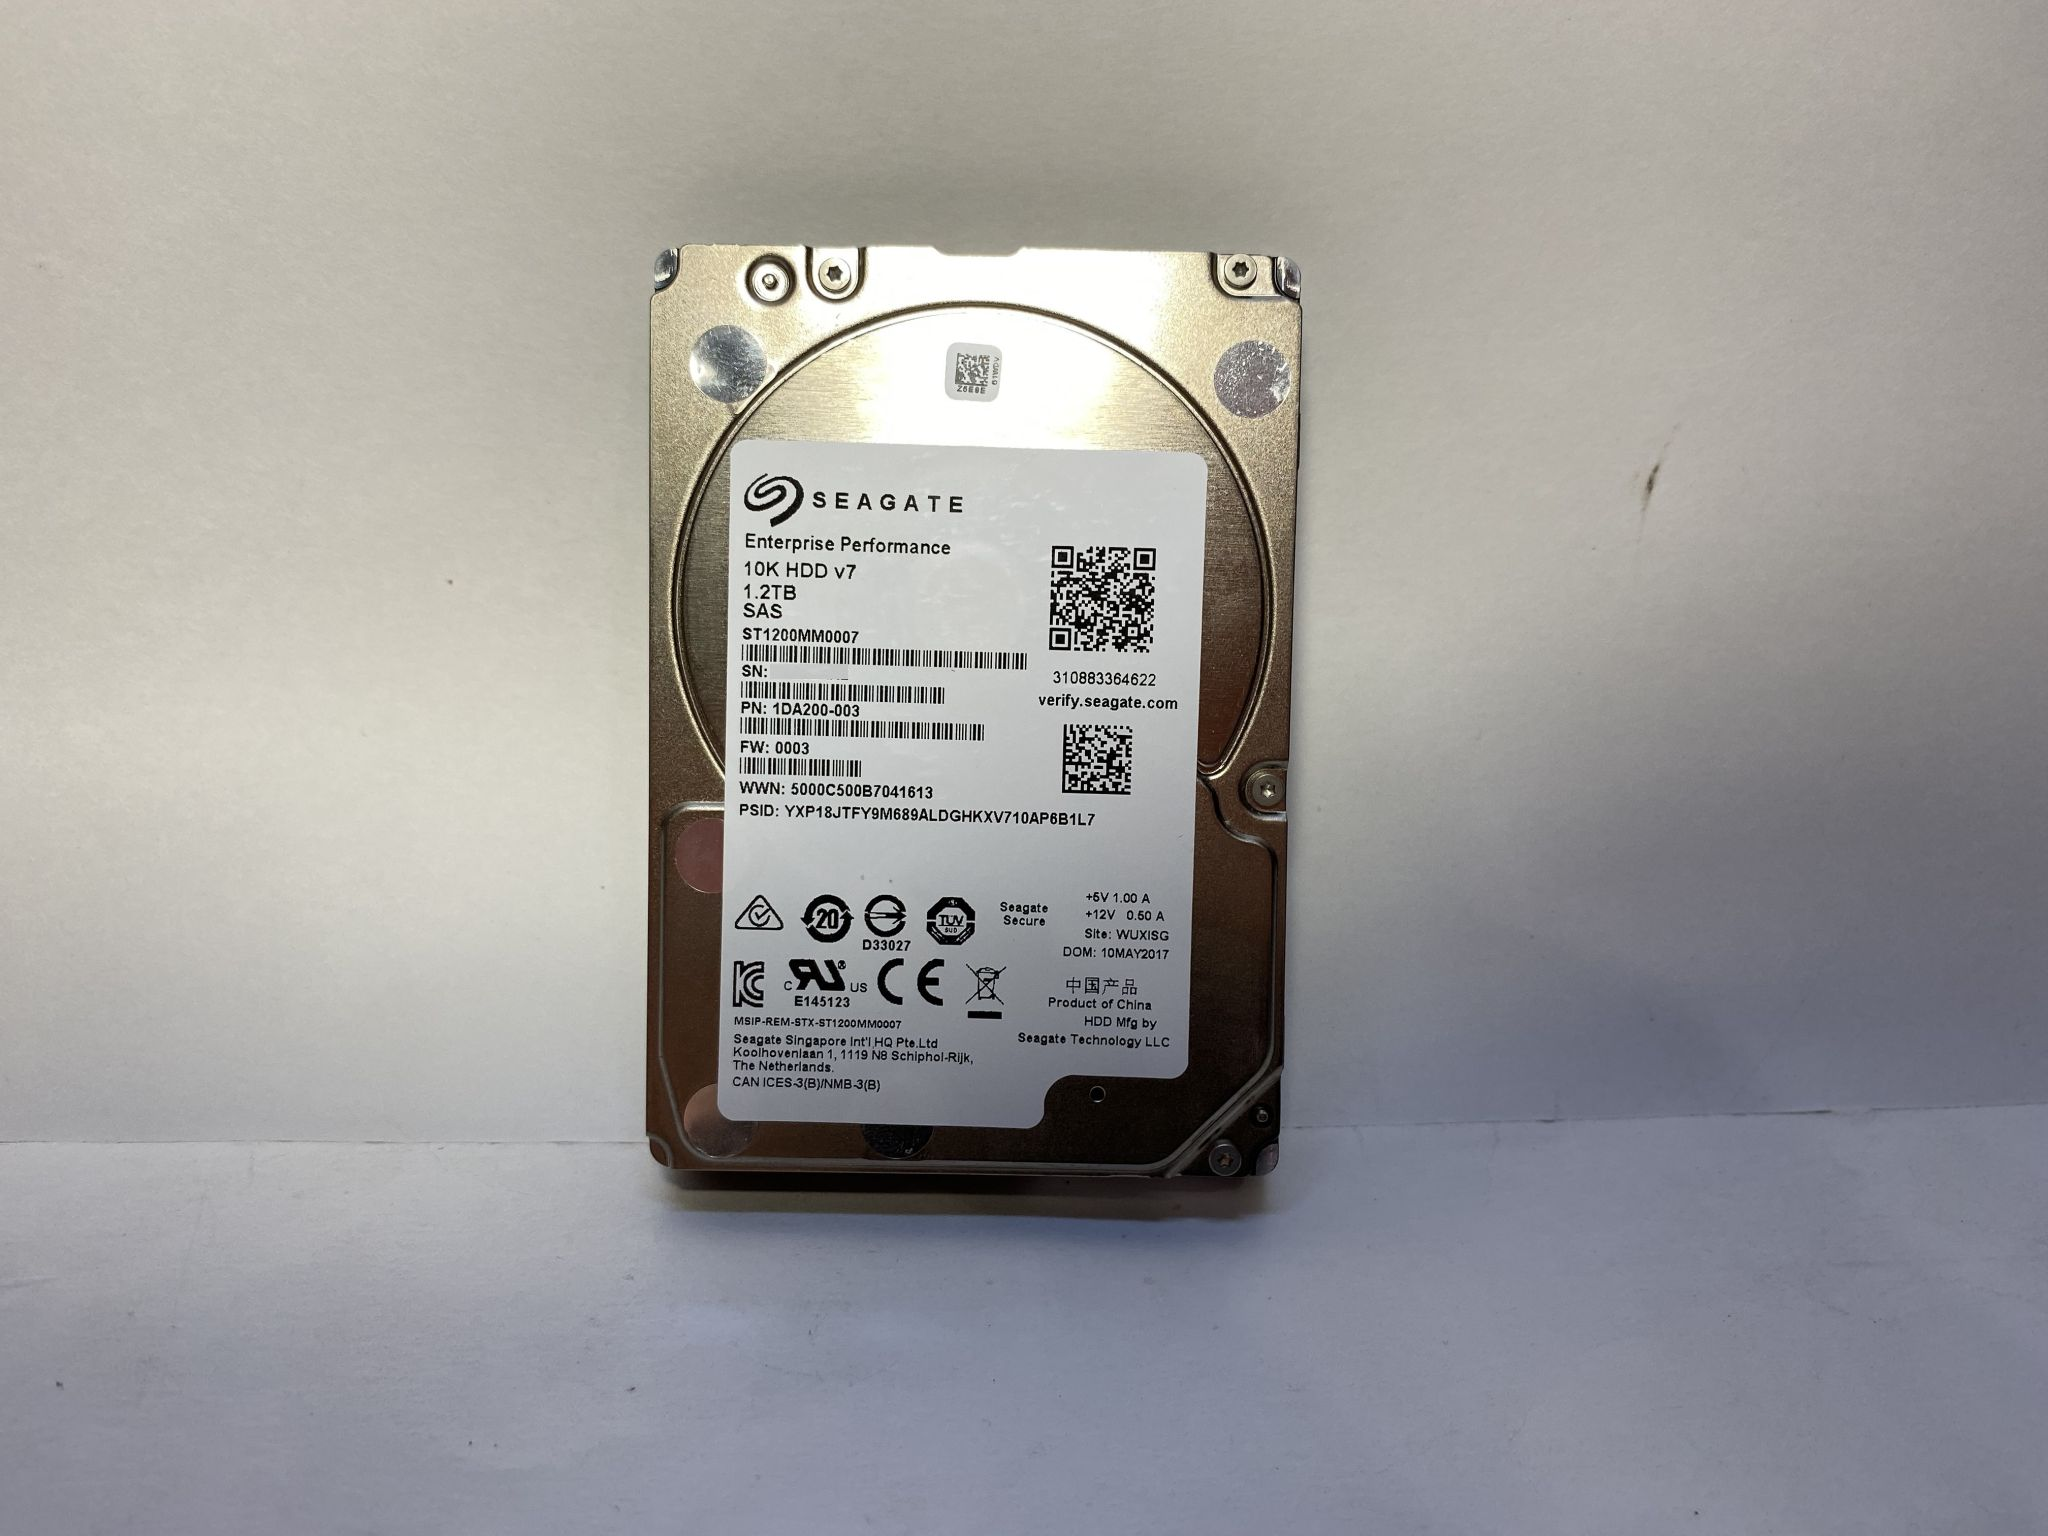 Жесткий диск Seagate Enterprise Performance 10K 512n 1.2TB, SAS 6Gb/s